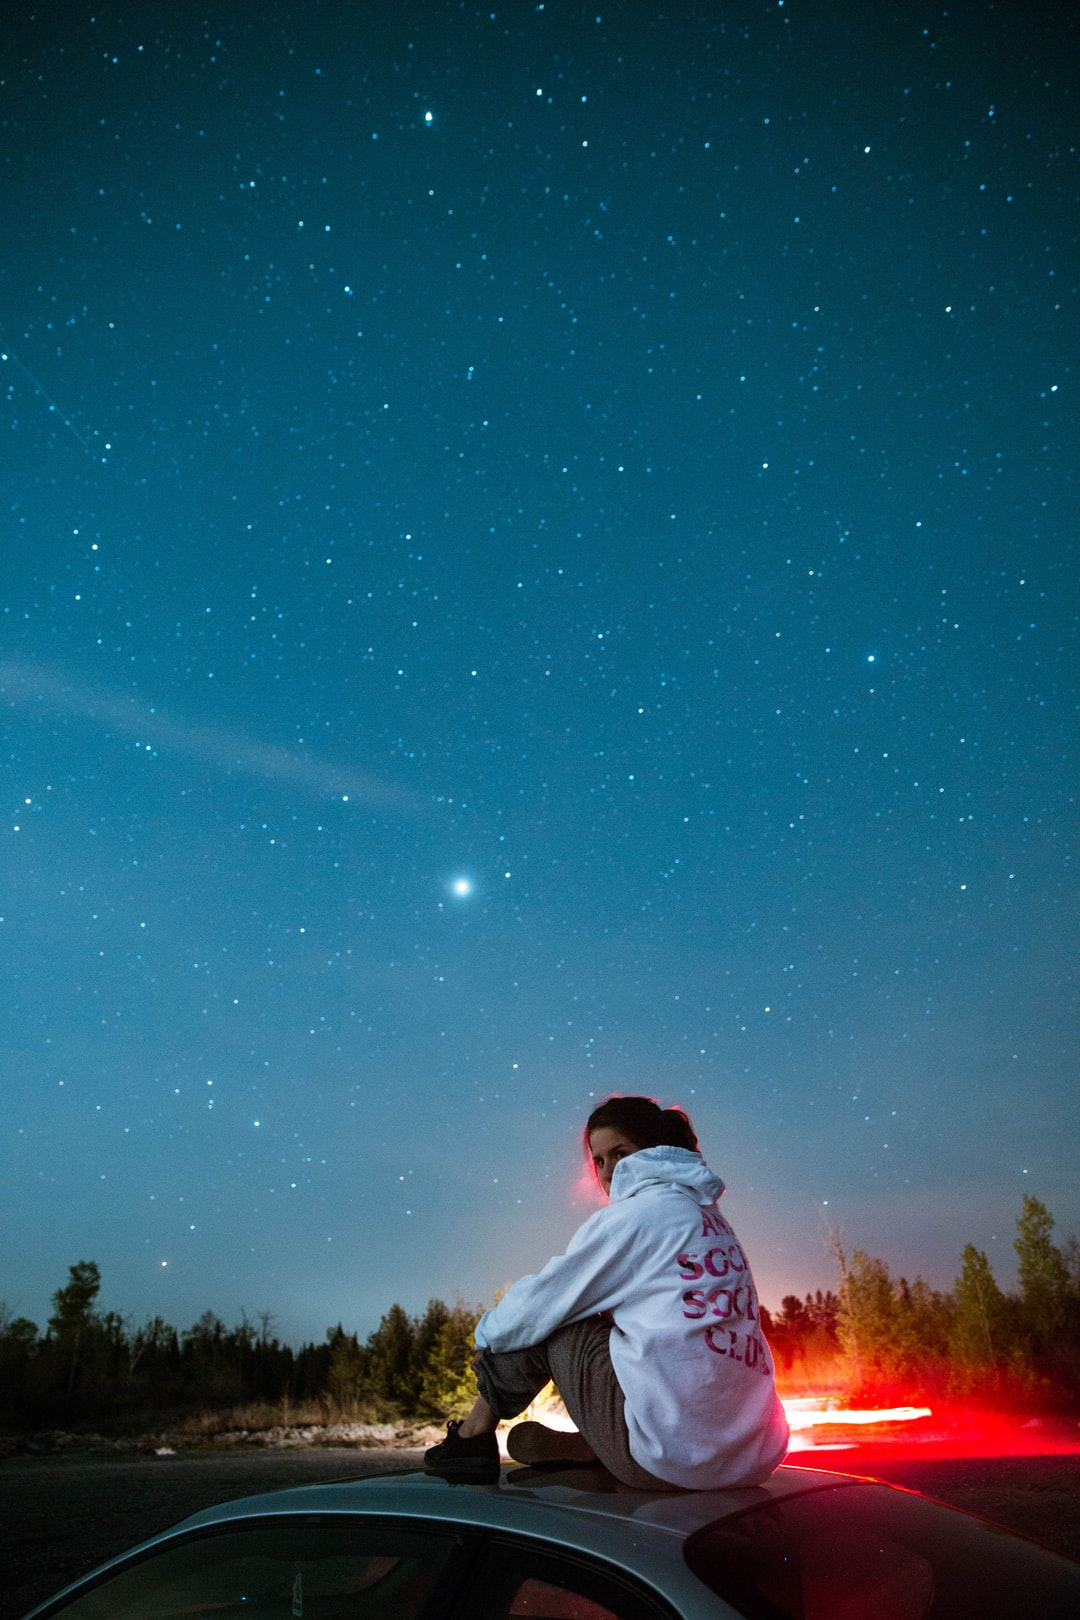 Stargazing Pictures | Download Free